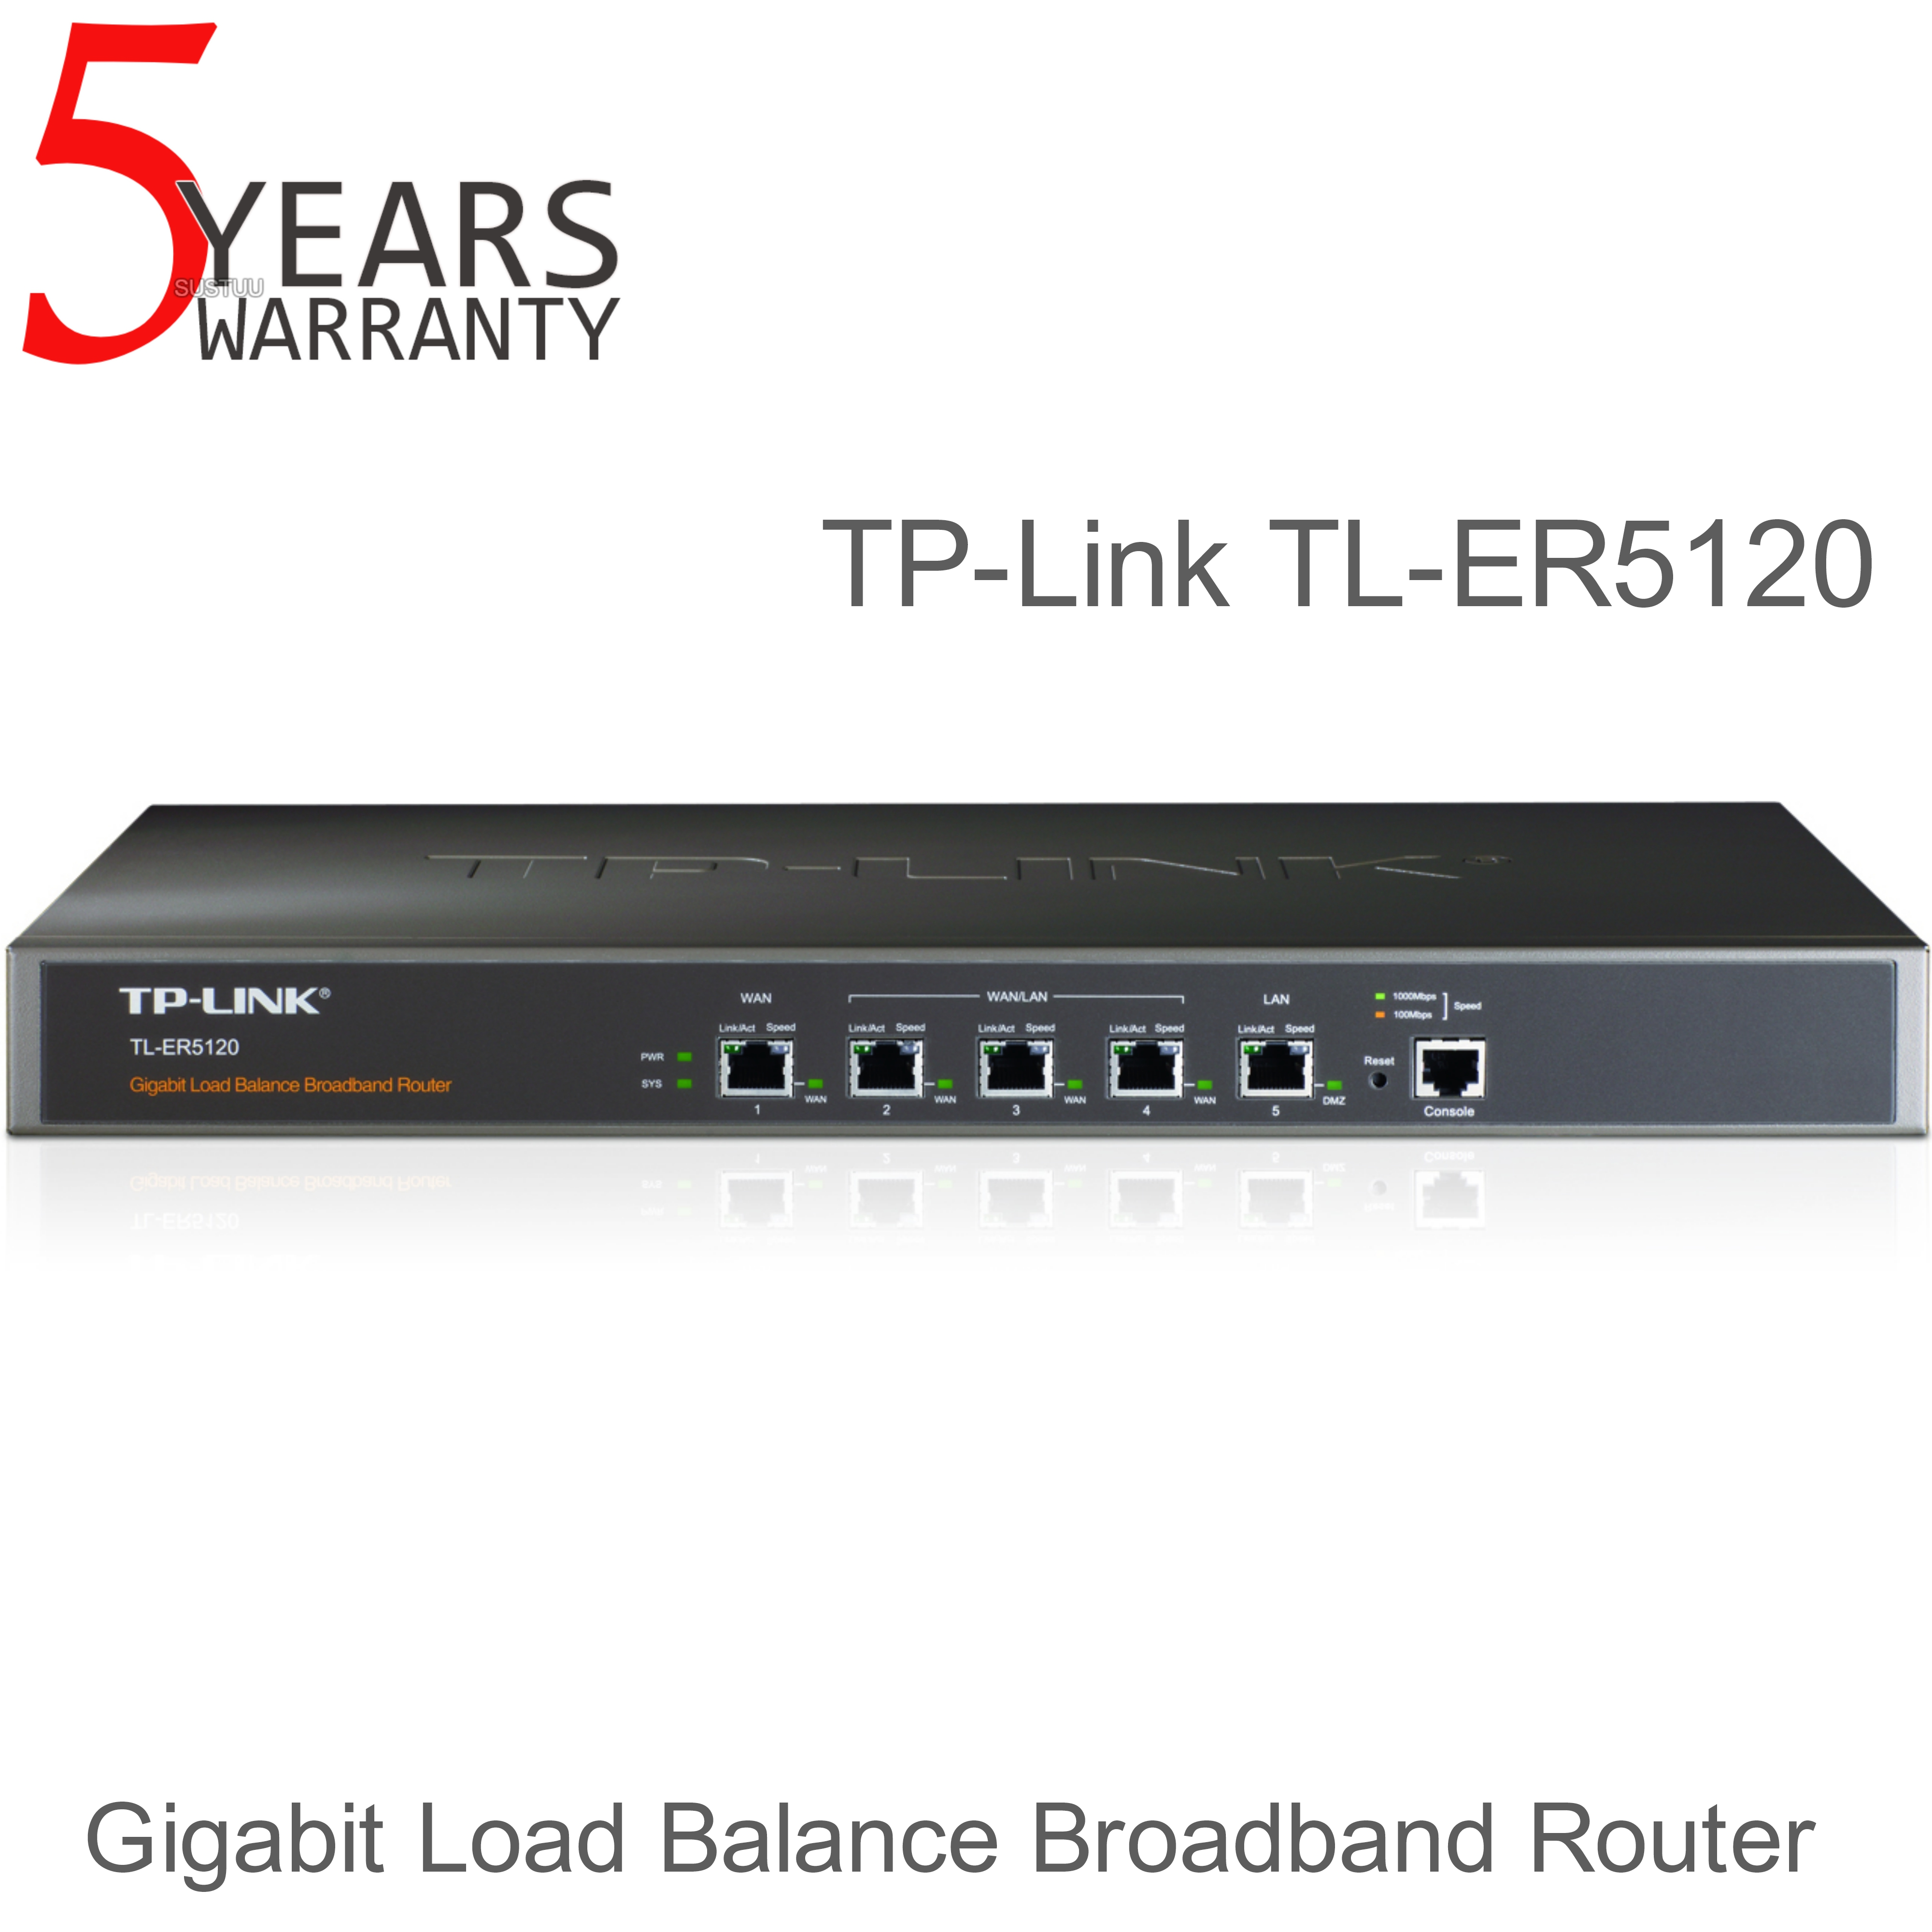 TP-LINK TL-ER5120 V1 ROUTER DRIVER FOR WINDOWS MAC